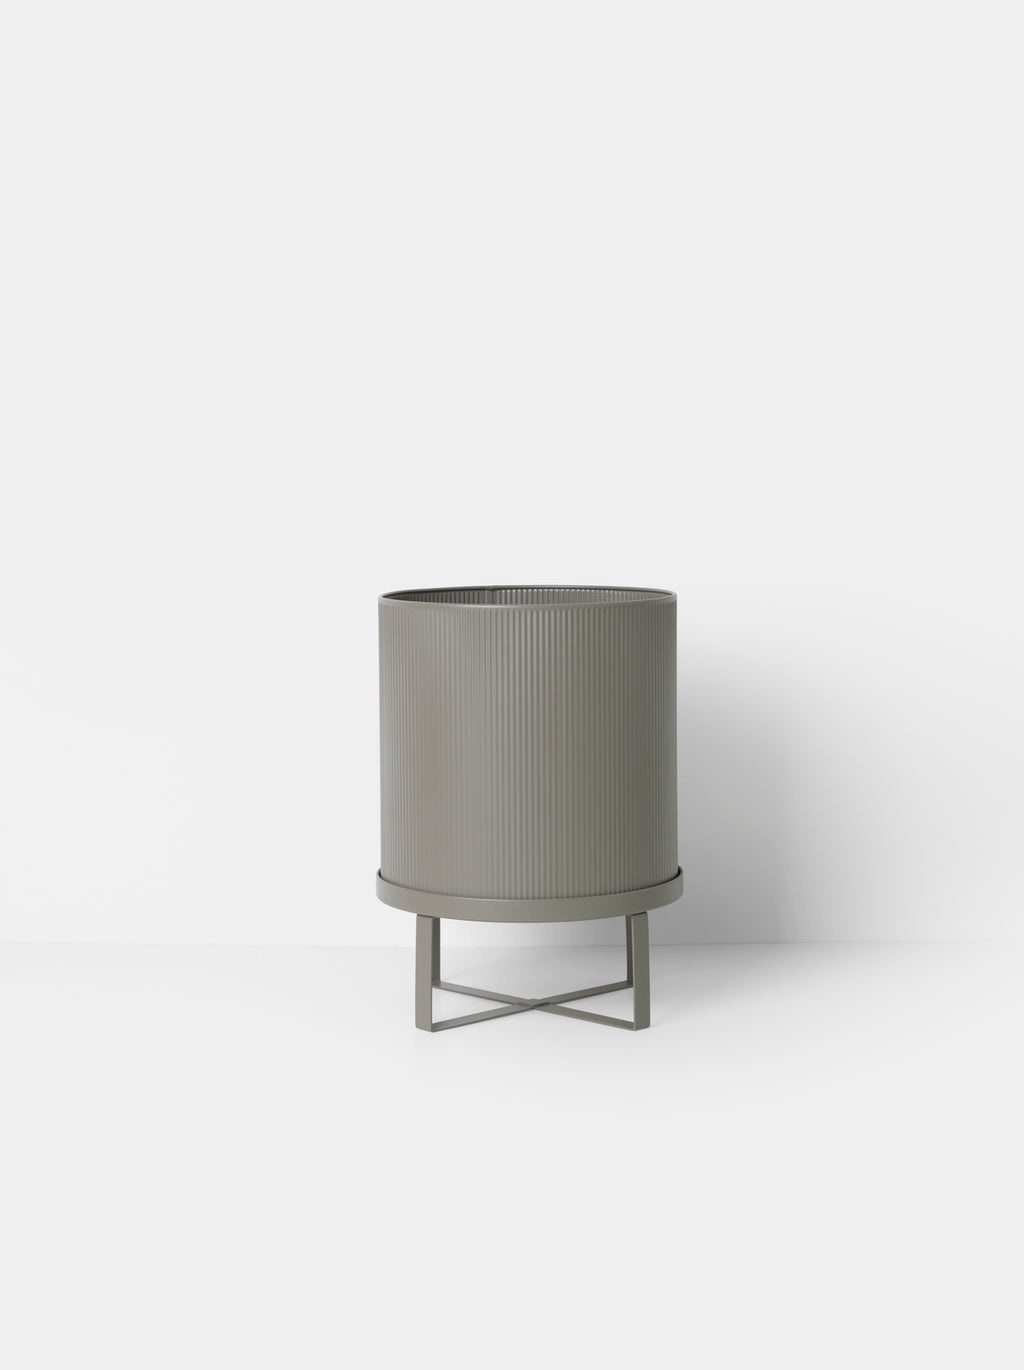 "11"" Ferm Living Bau Pot in Warm Grey"